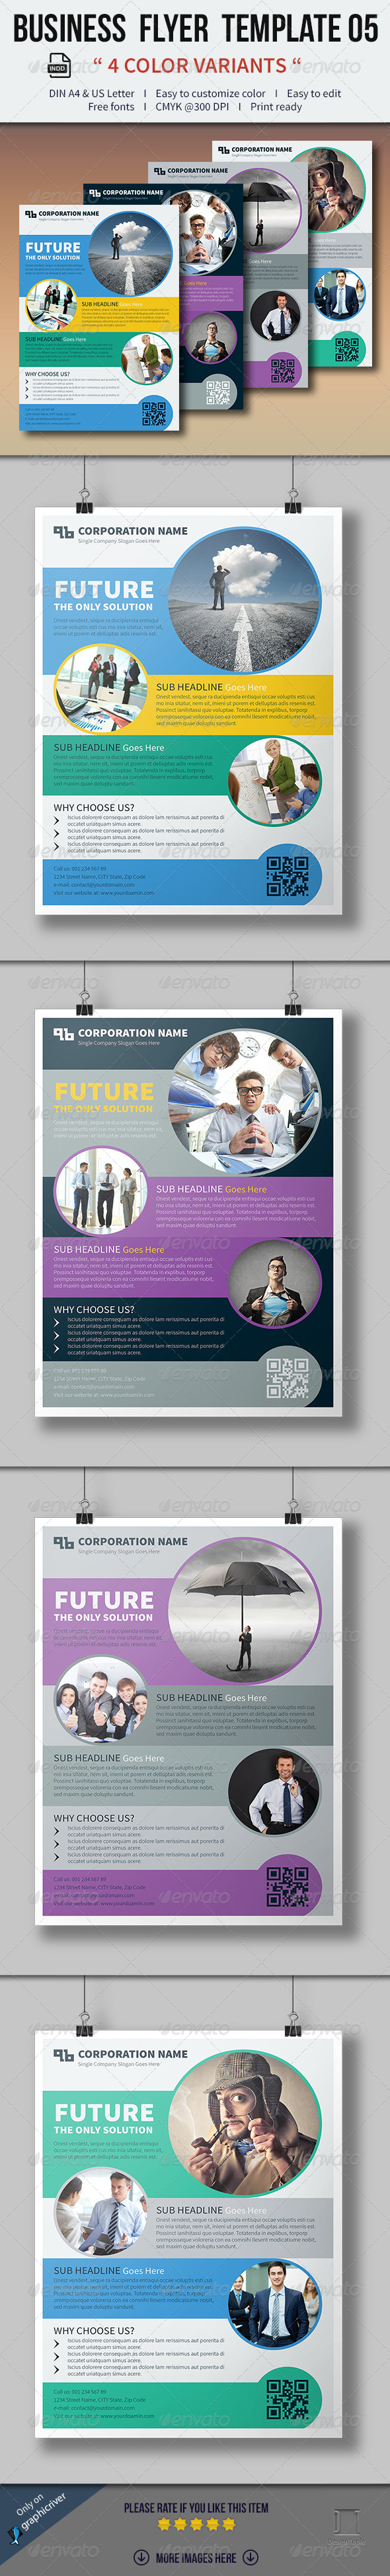 GraphicRiver Business Flyer Template 05 8181789